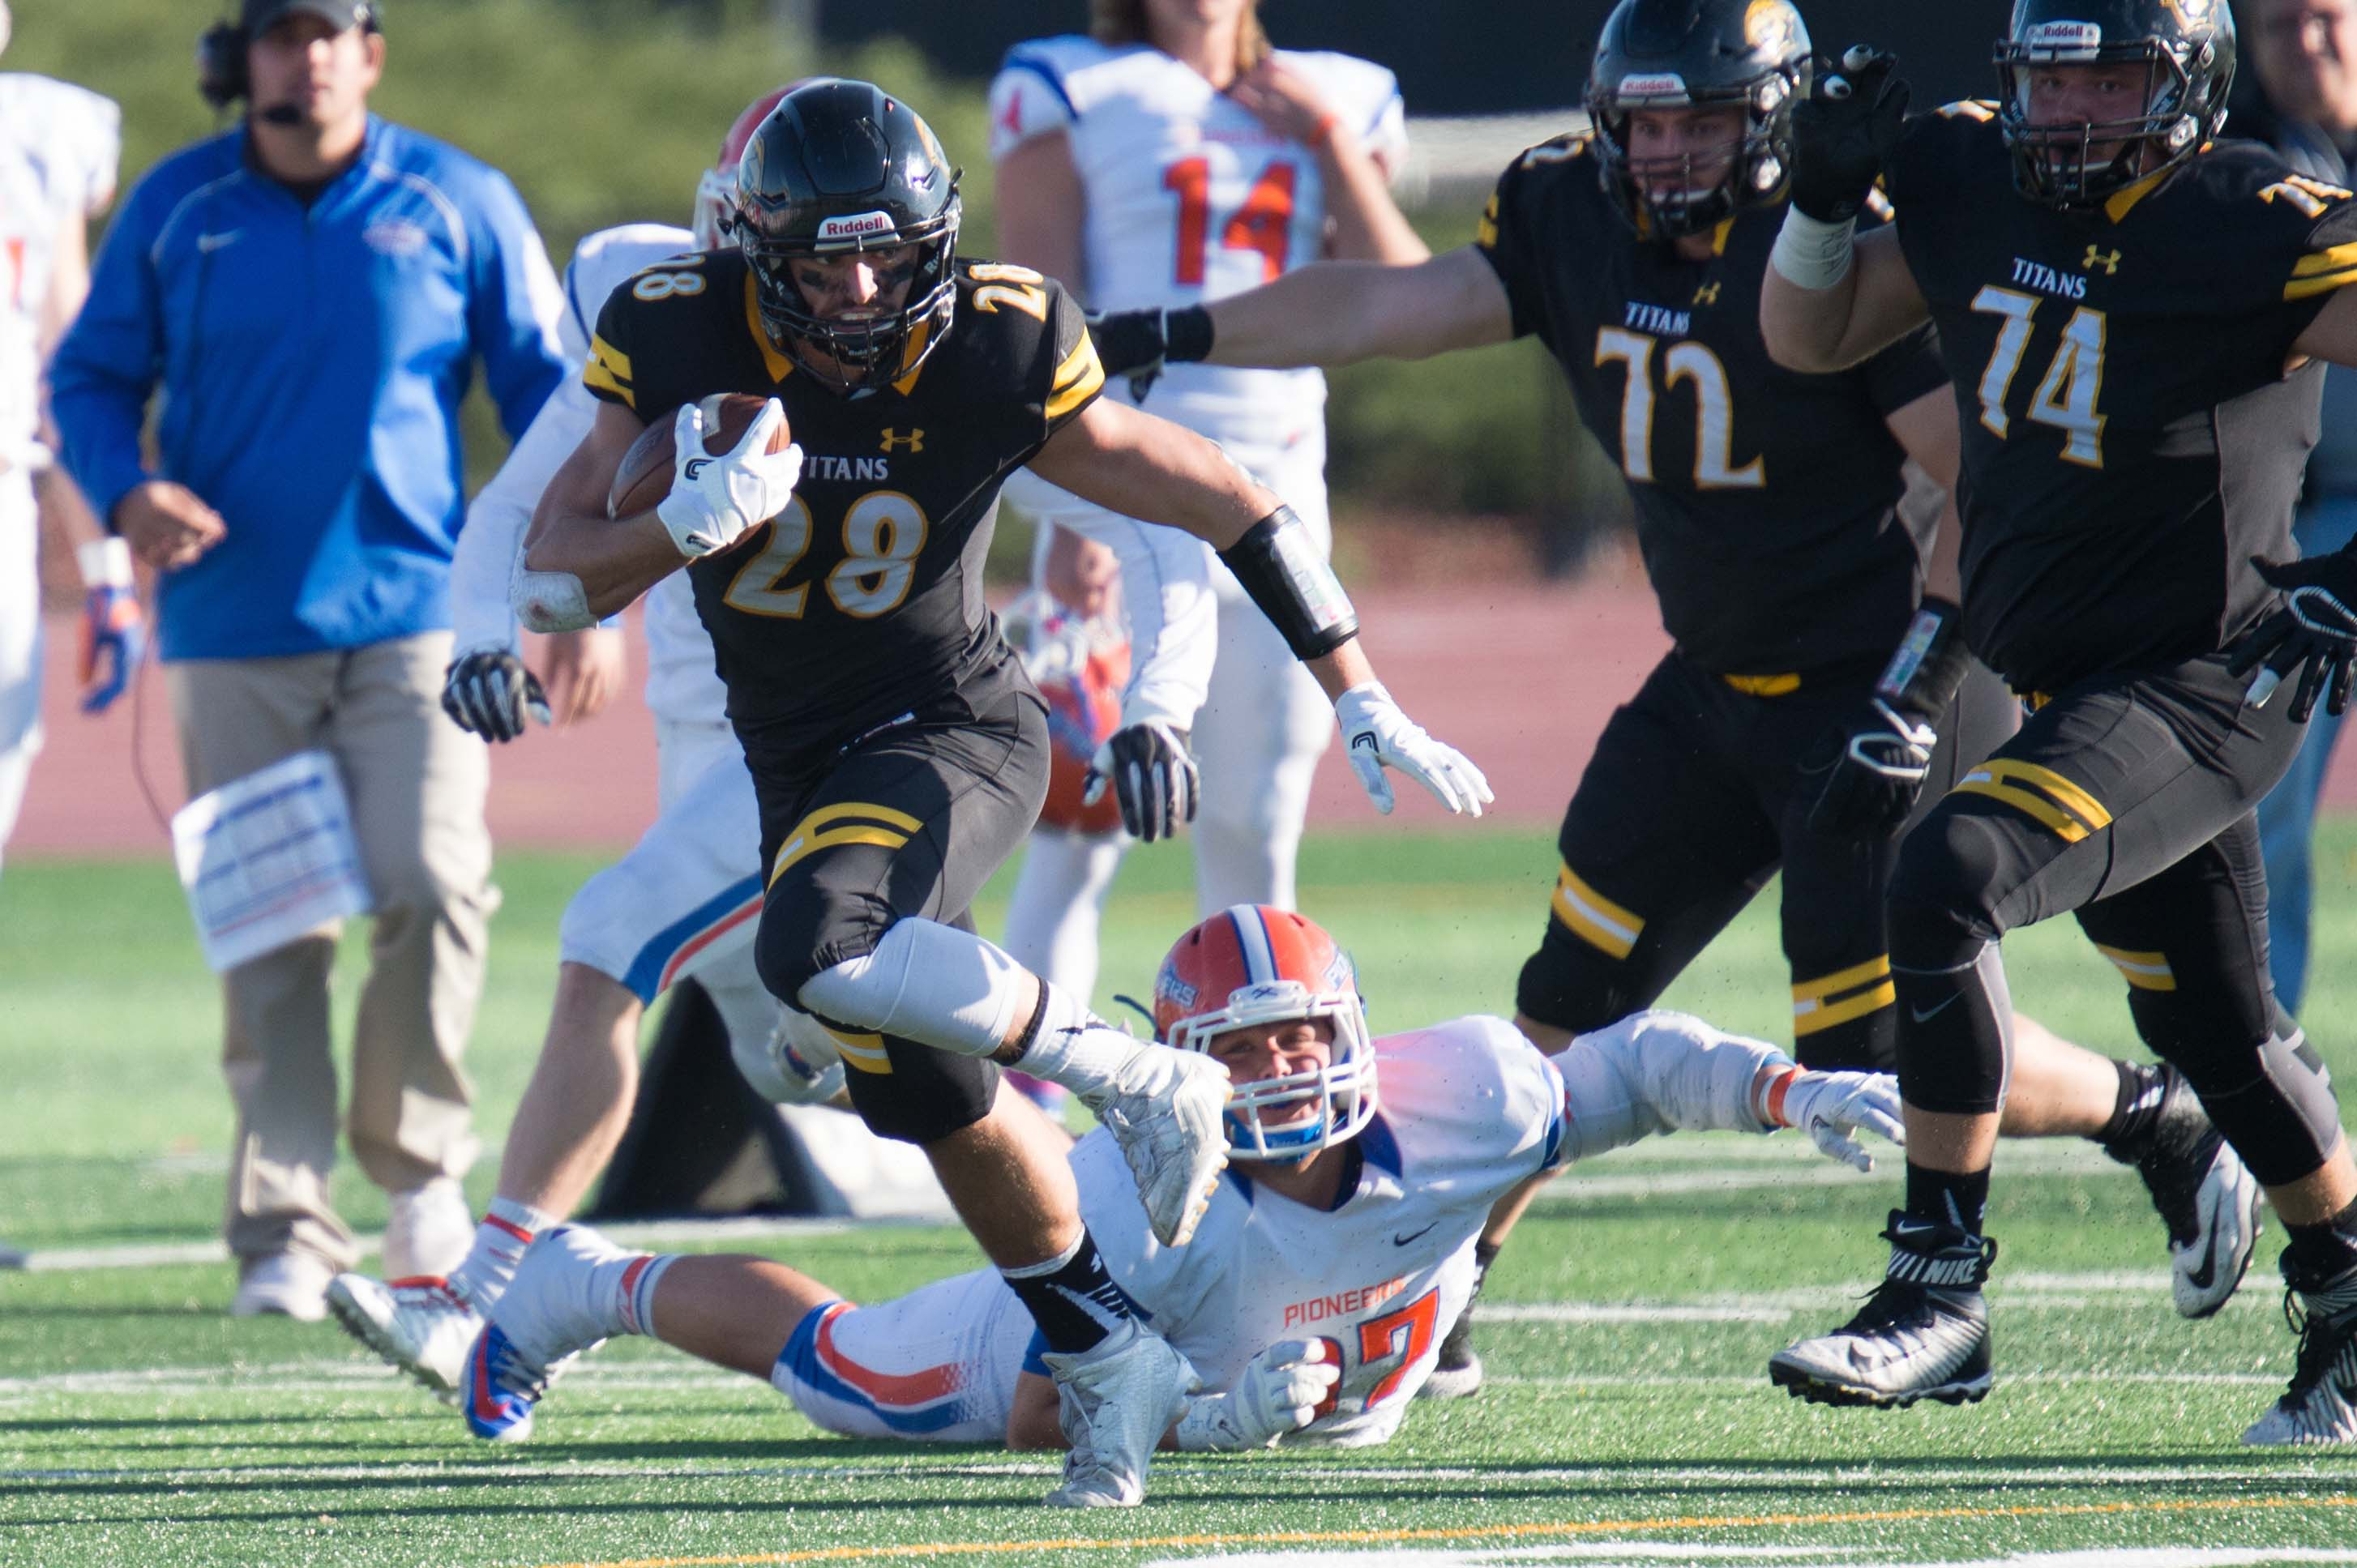 After a loss to UW-Whitewater ended their chance at a perfect season, the Titans are back on track